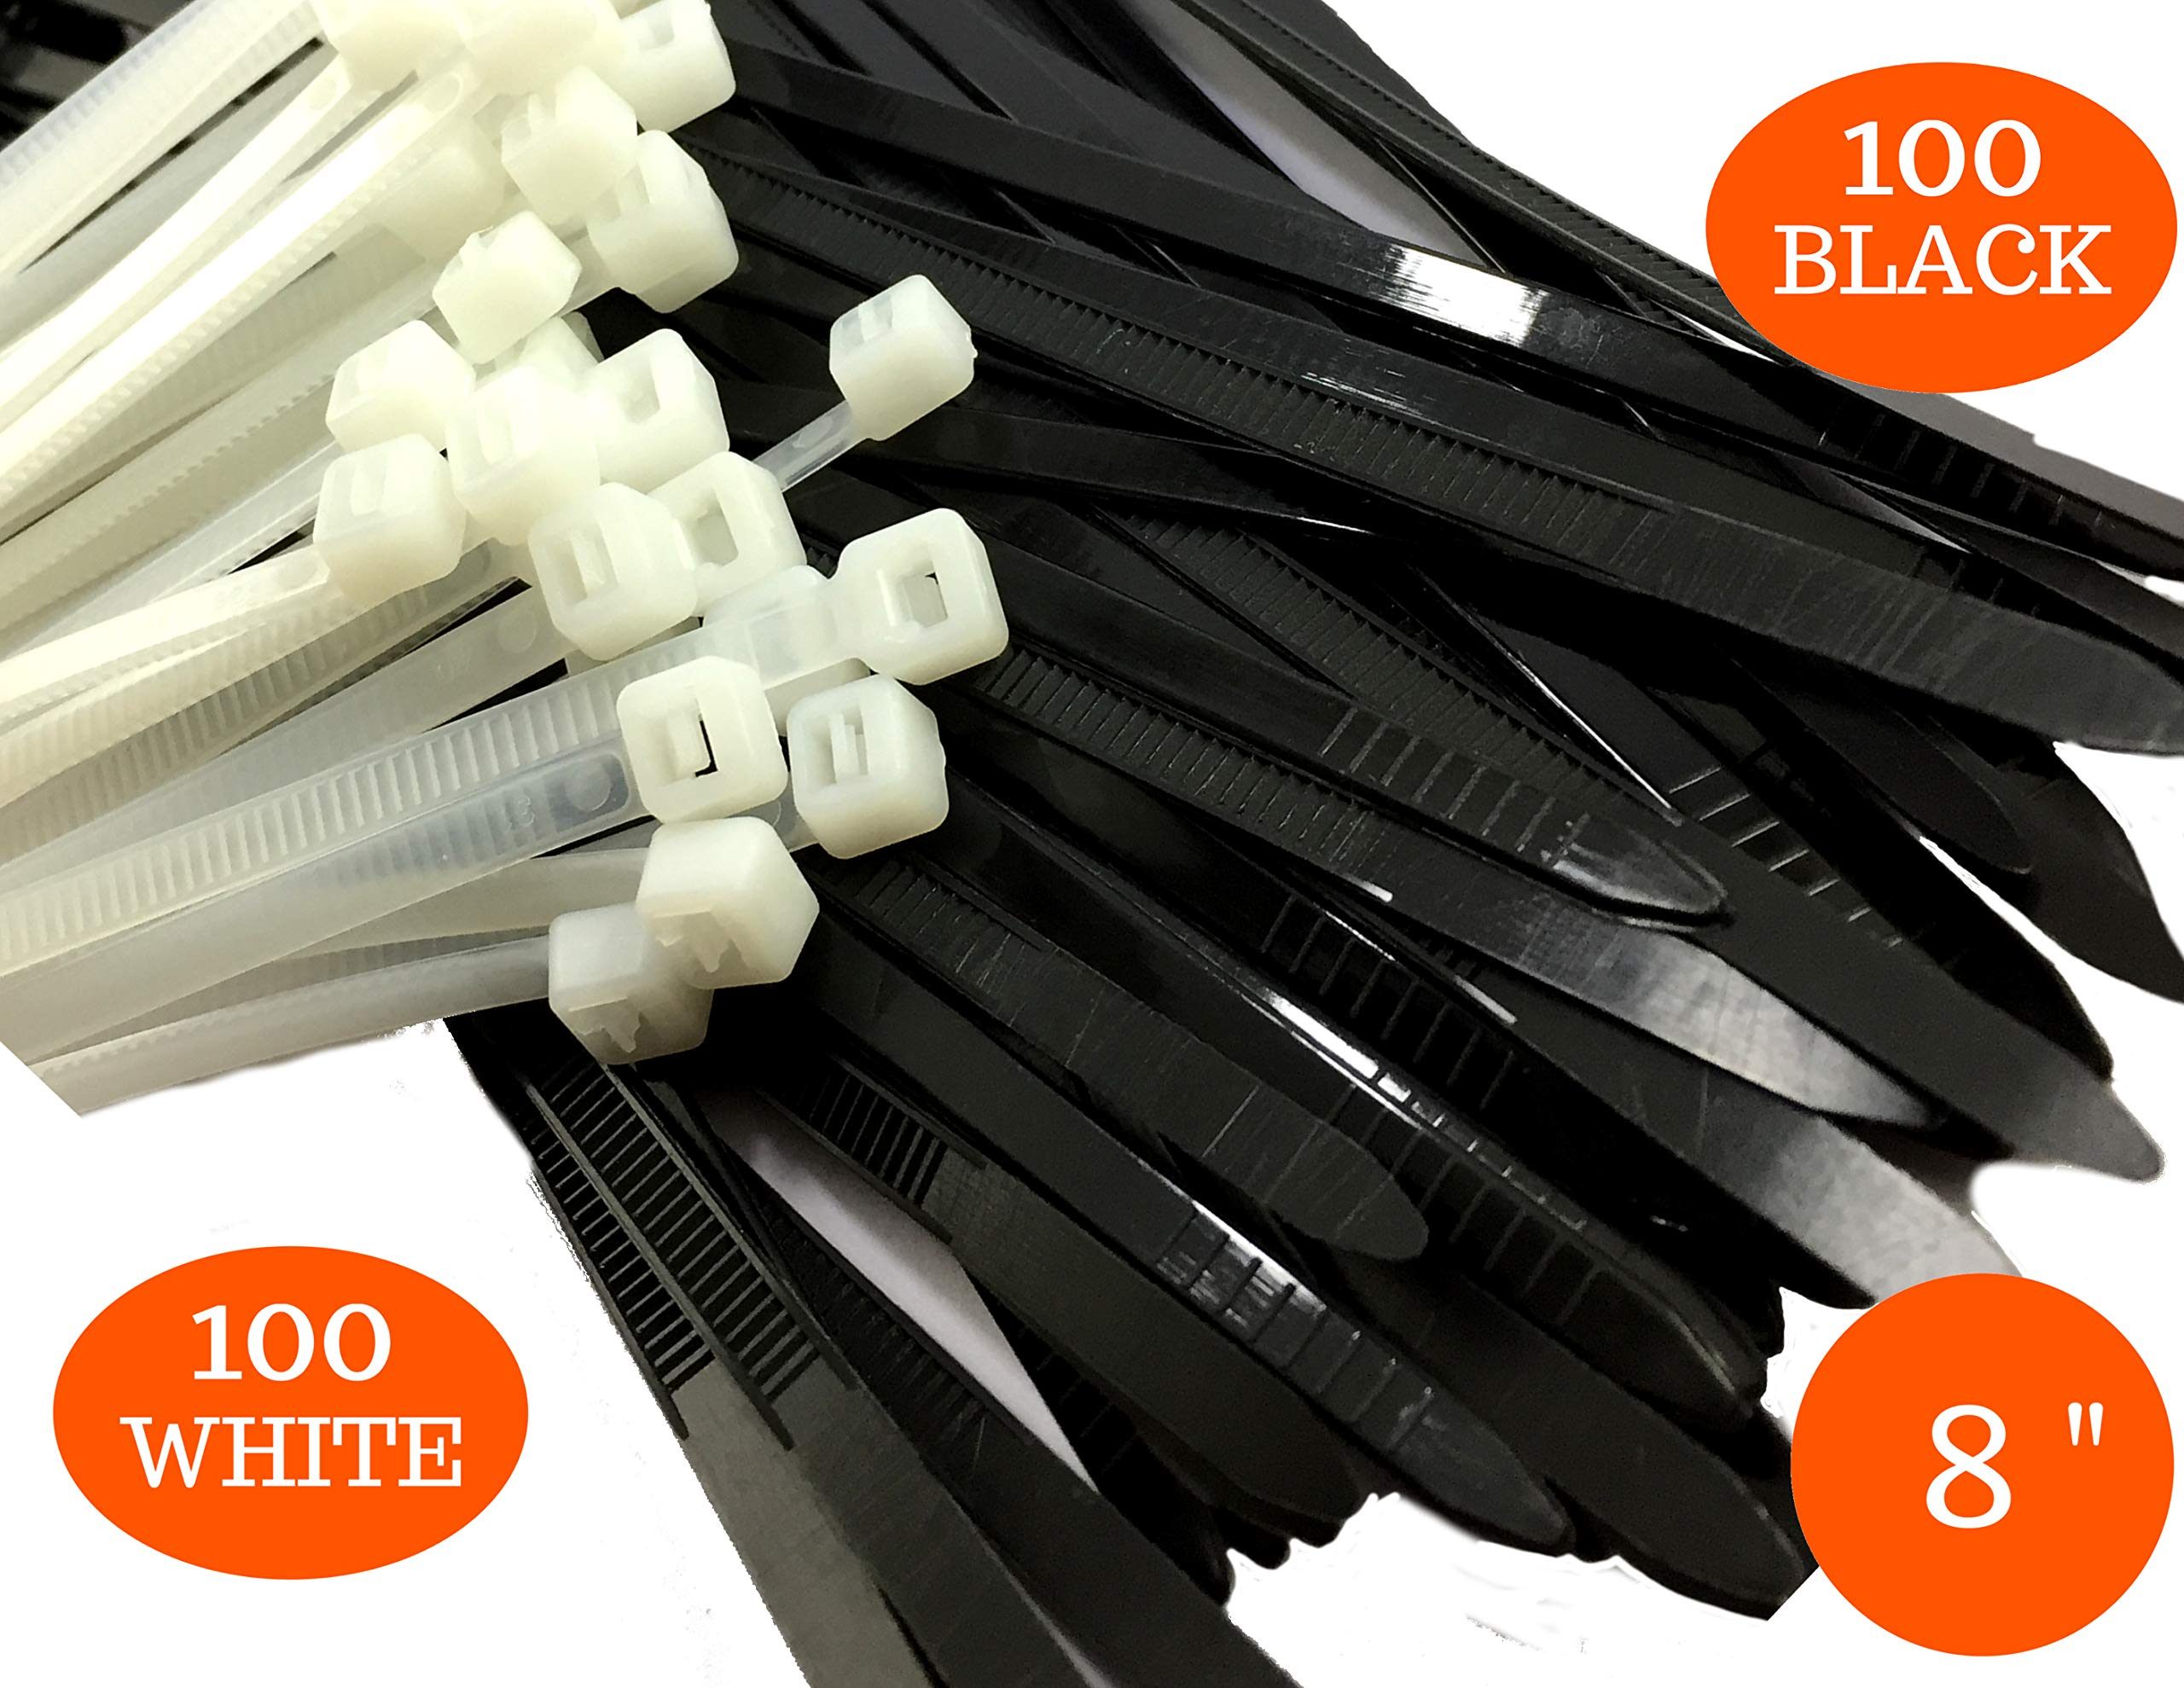 Zip Ties Heavy Duty 8 inch, Plastic Cable Ties Black/White with 100% UV Stabilized Nylon 6/6, with Strong 50 Lb Tensile Strength. Use it in Indoor and Outdoor Applications (Set 200 pcs)